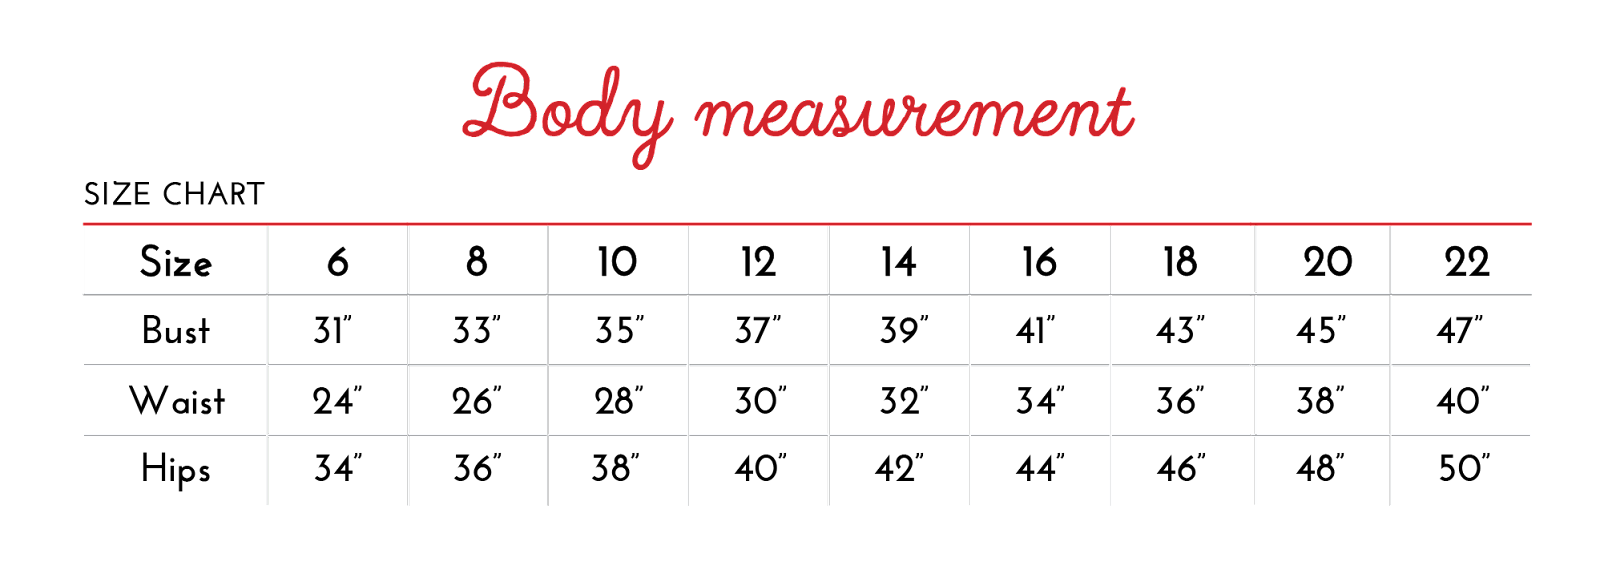 body measurement chart Simple Sew